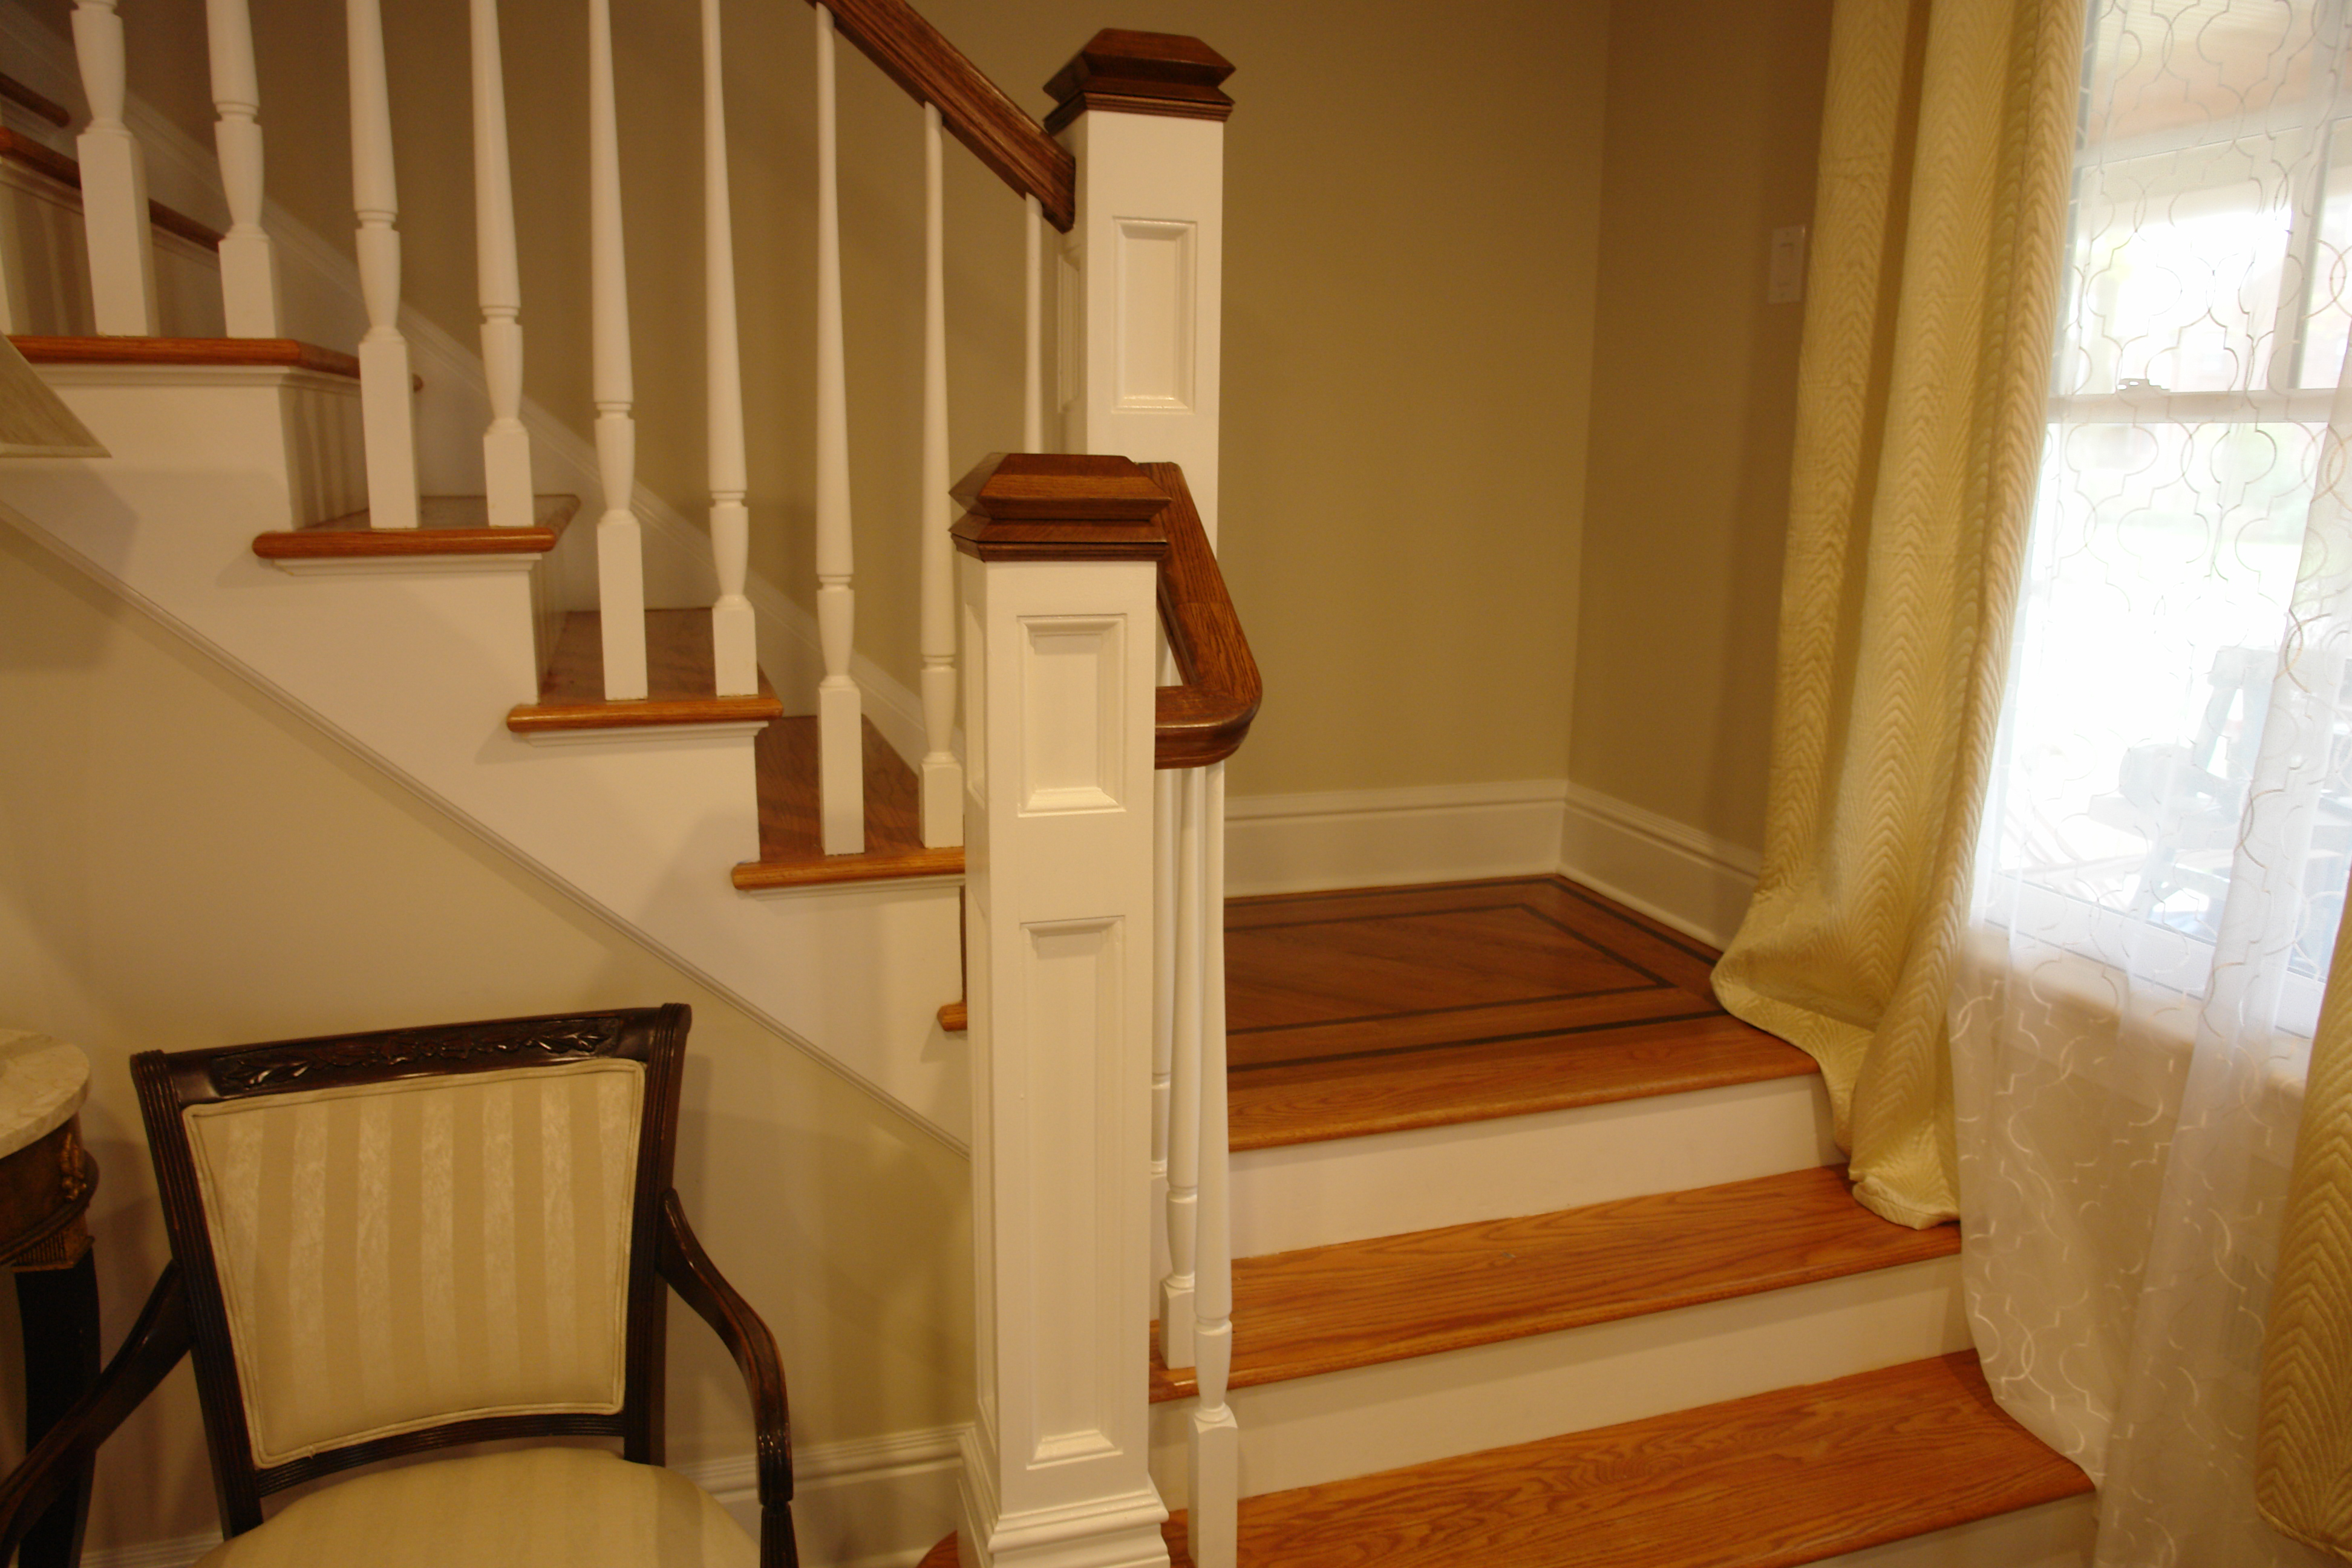 Wooden staircase and hand rails